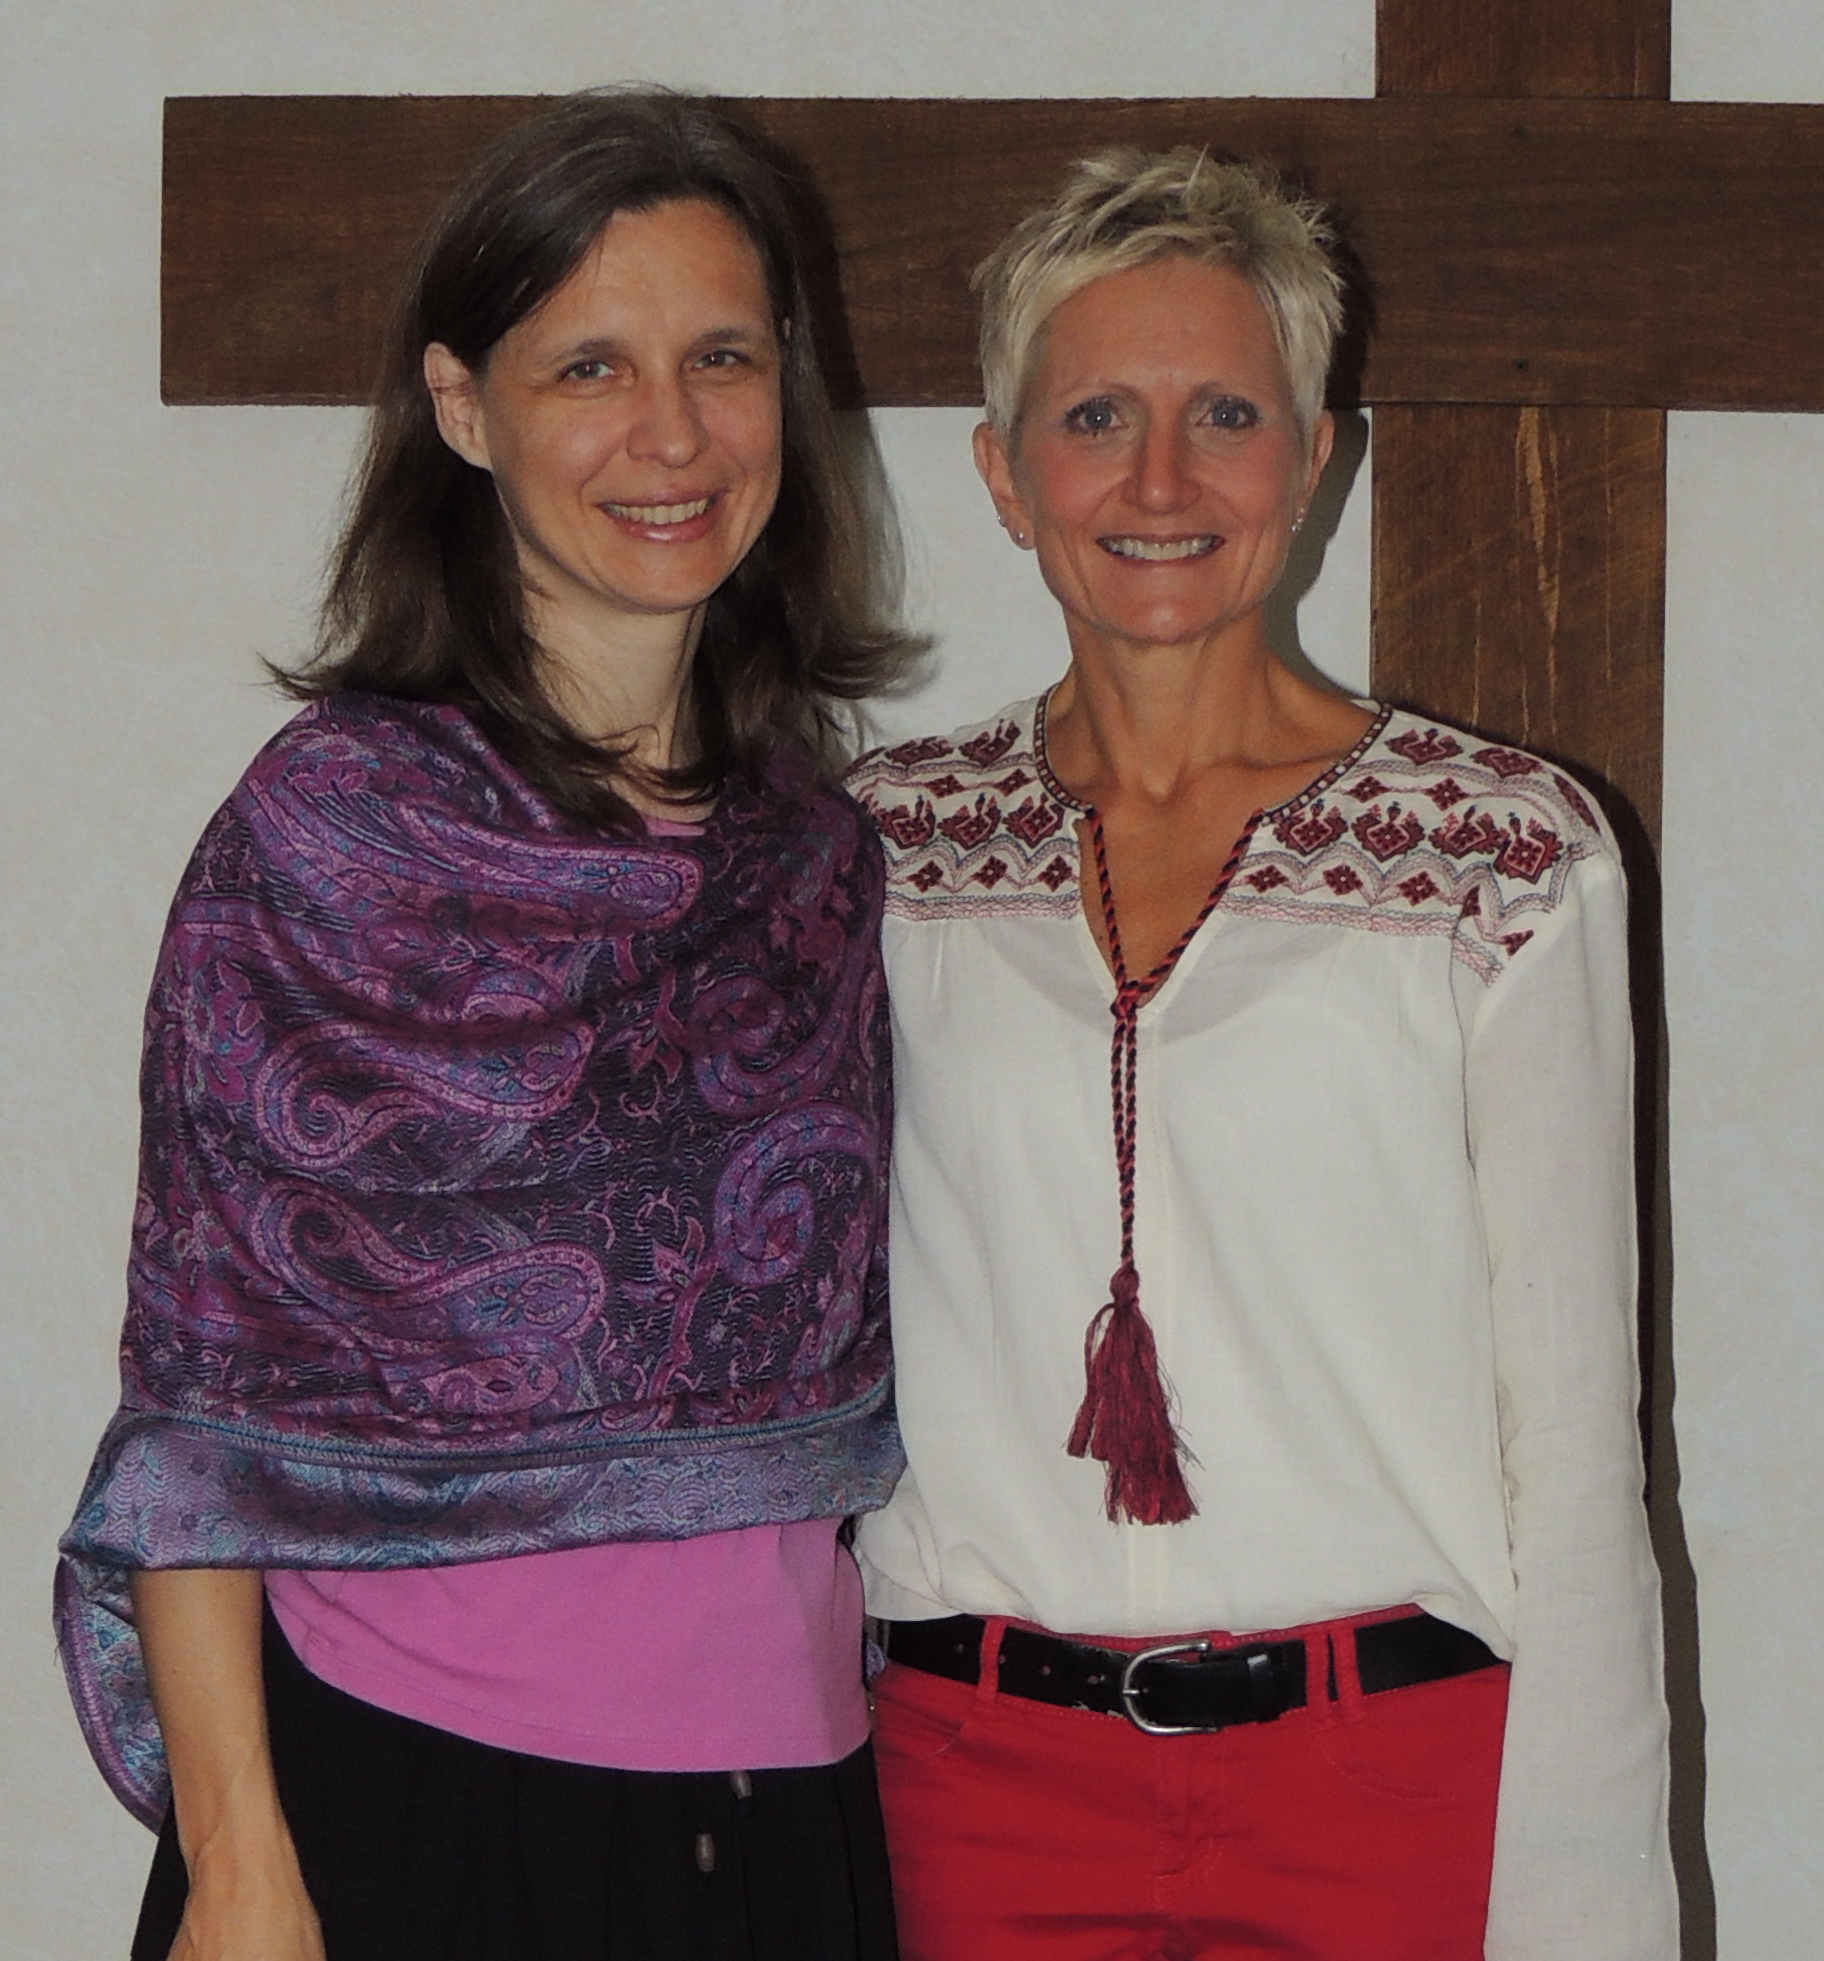 Dr. Anita Guiterrez and Rev. Sue Royle - Associate Regional Pastor for GoGlobal Mission Ministries